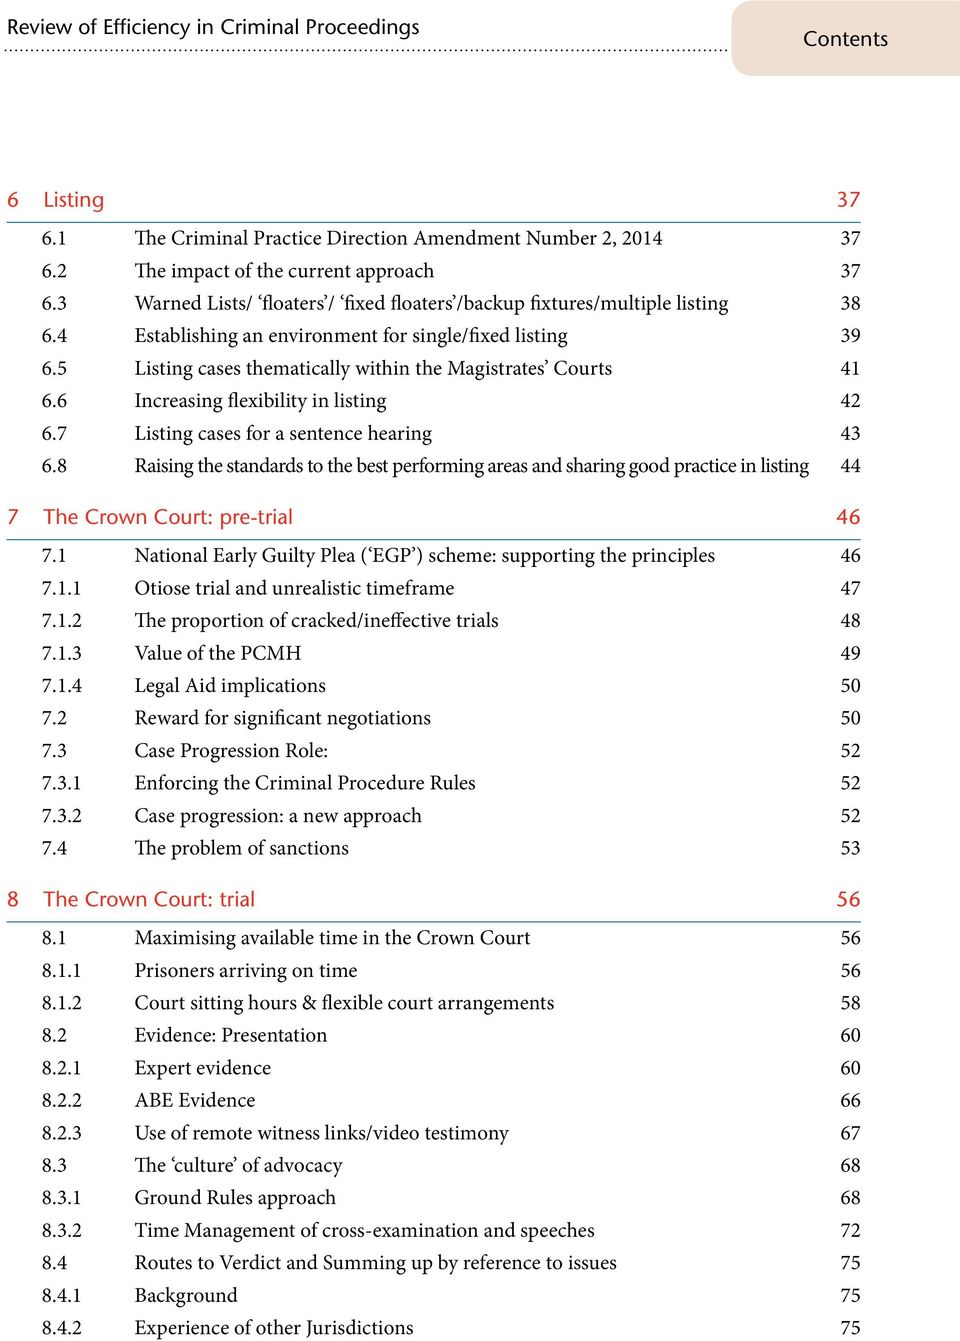 5 Listing cases thematically within the Magistrates Courts 41 6.6 Increasing flexibility in listing 42 6.7 Listing cases for a sentence hearing 43 6.